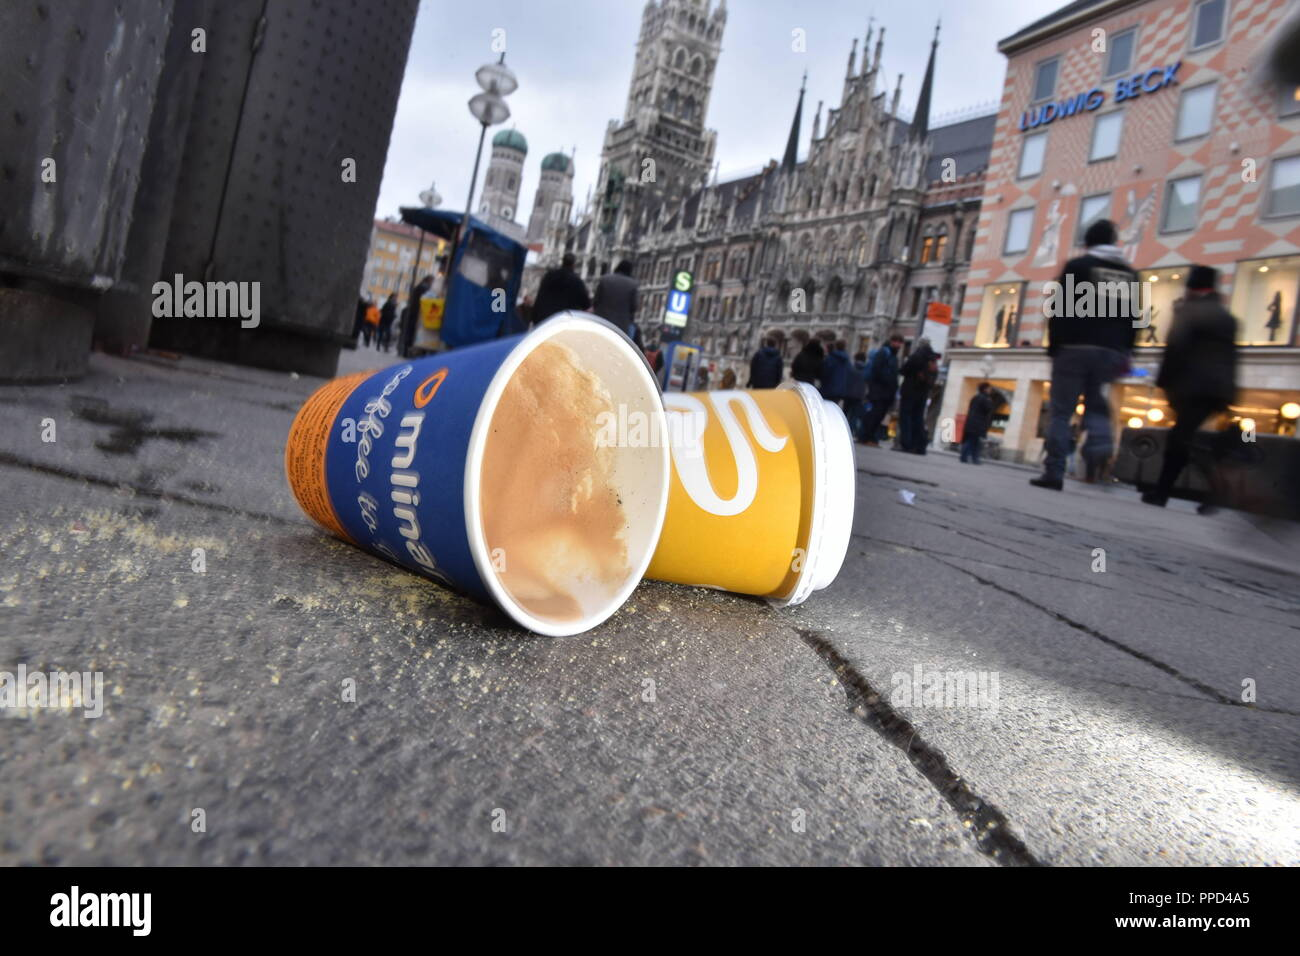 Coffee-to-go cups at the Marienplatz in Munich, 2016 - Stock Image